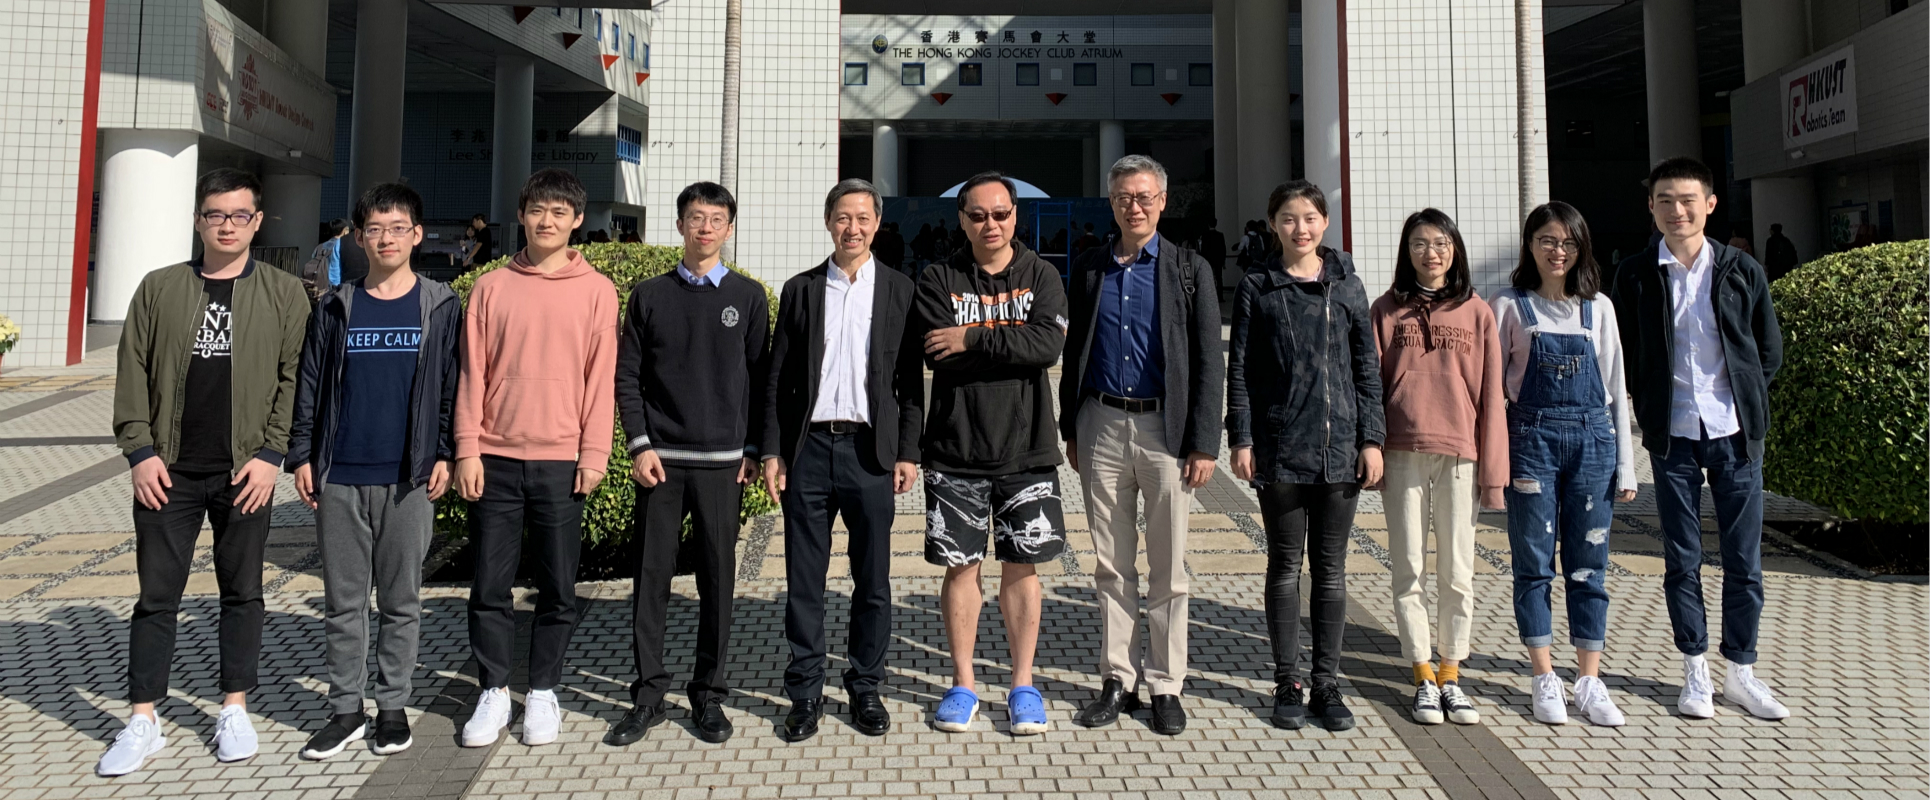 Prof. Vincent Wong visited our group